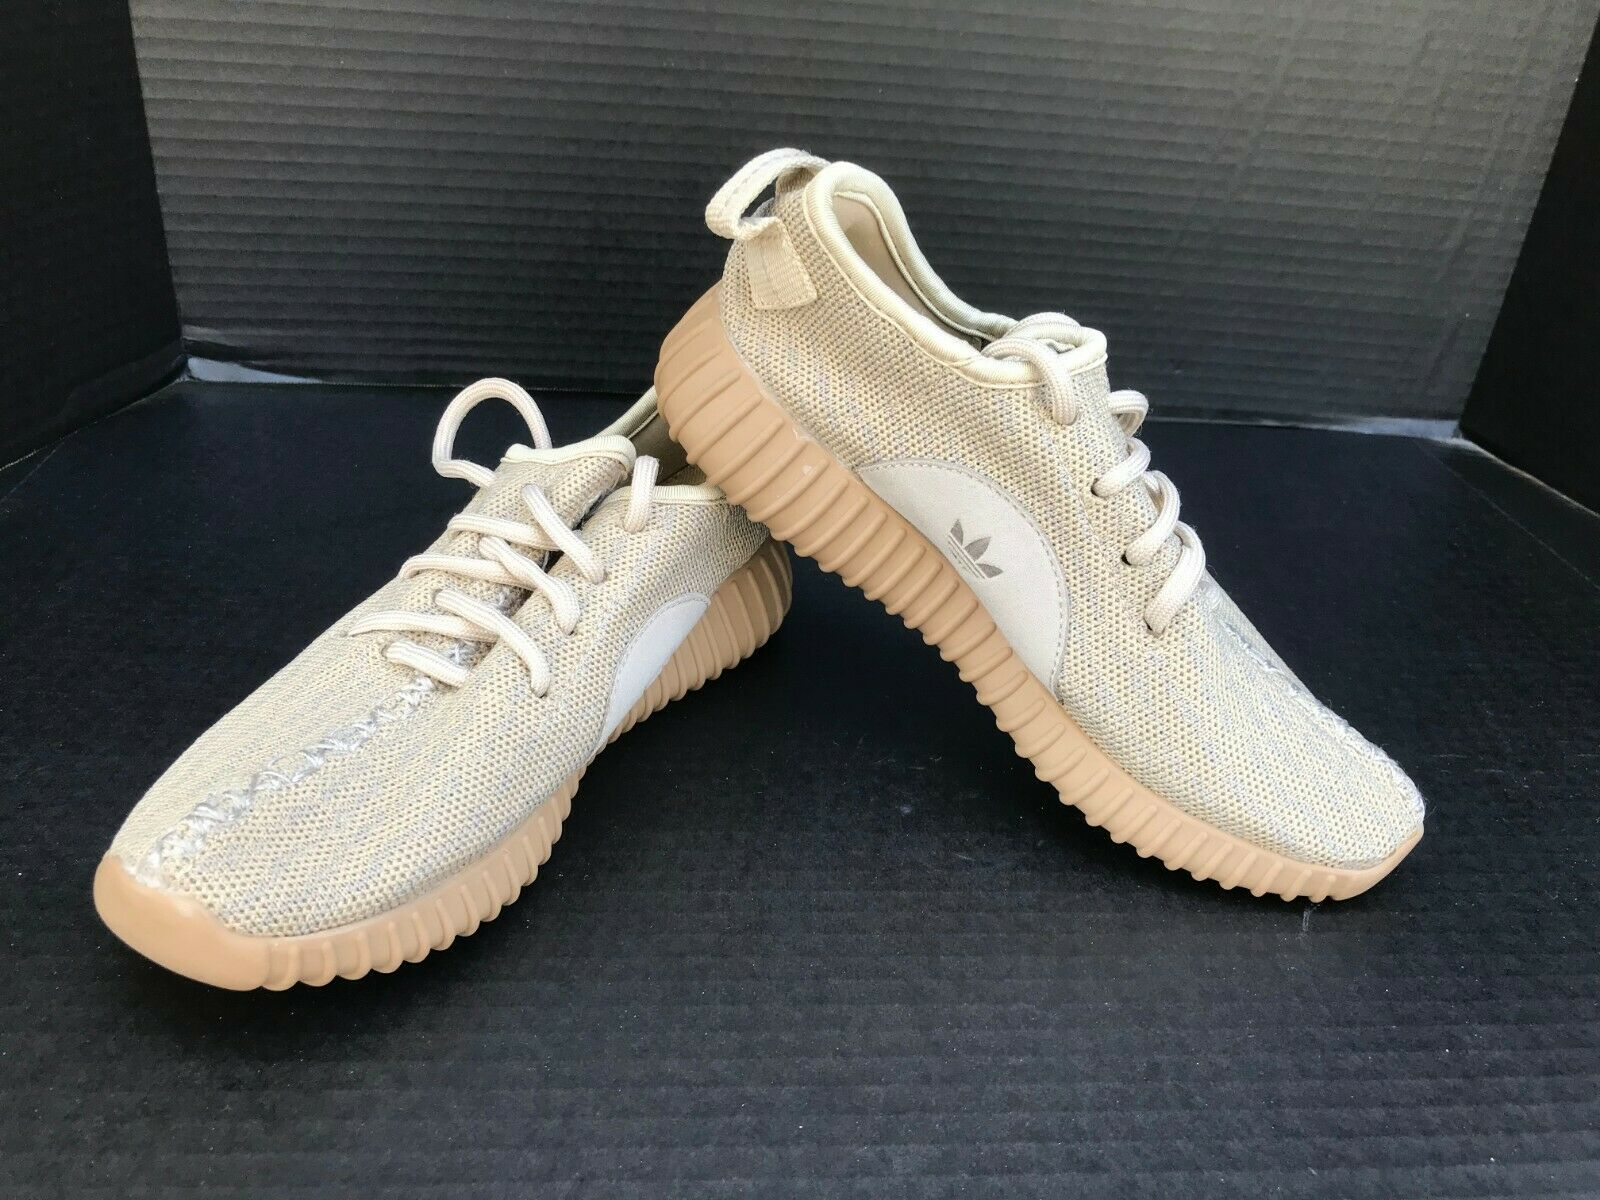 Adidas Yeezy Boost 350 Oxford Tan AQ2661 size 6  100% authentic